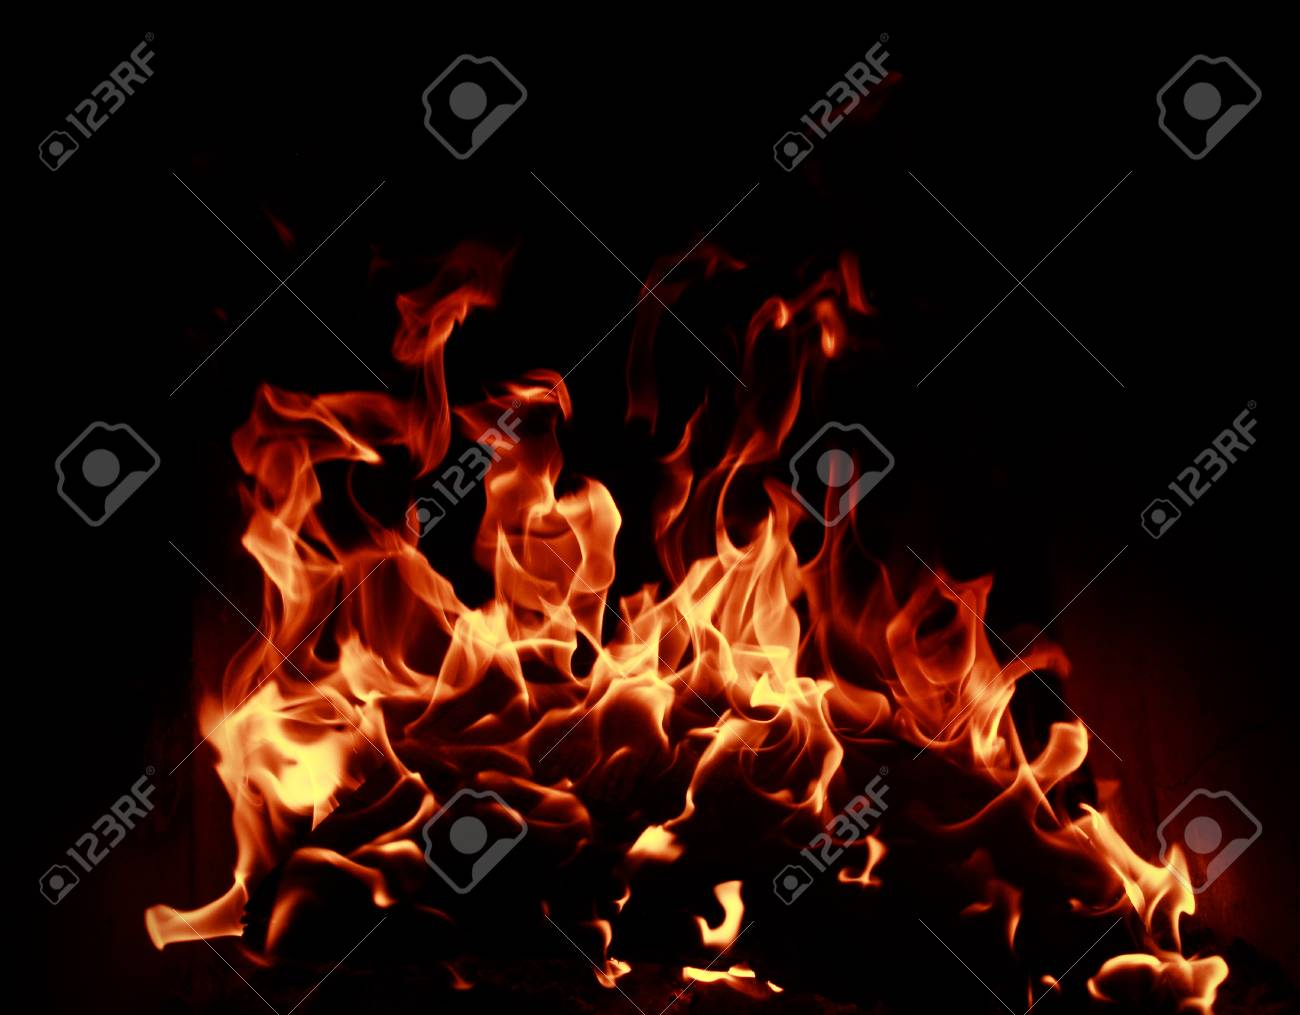 Fire flames with reflection on dark background Stock Photo - 22244263